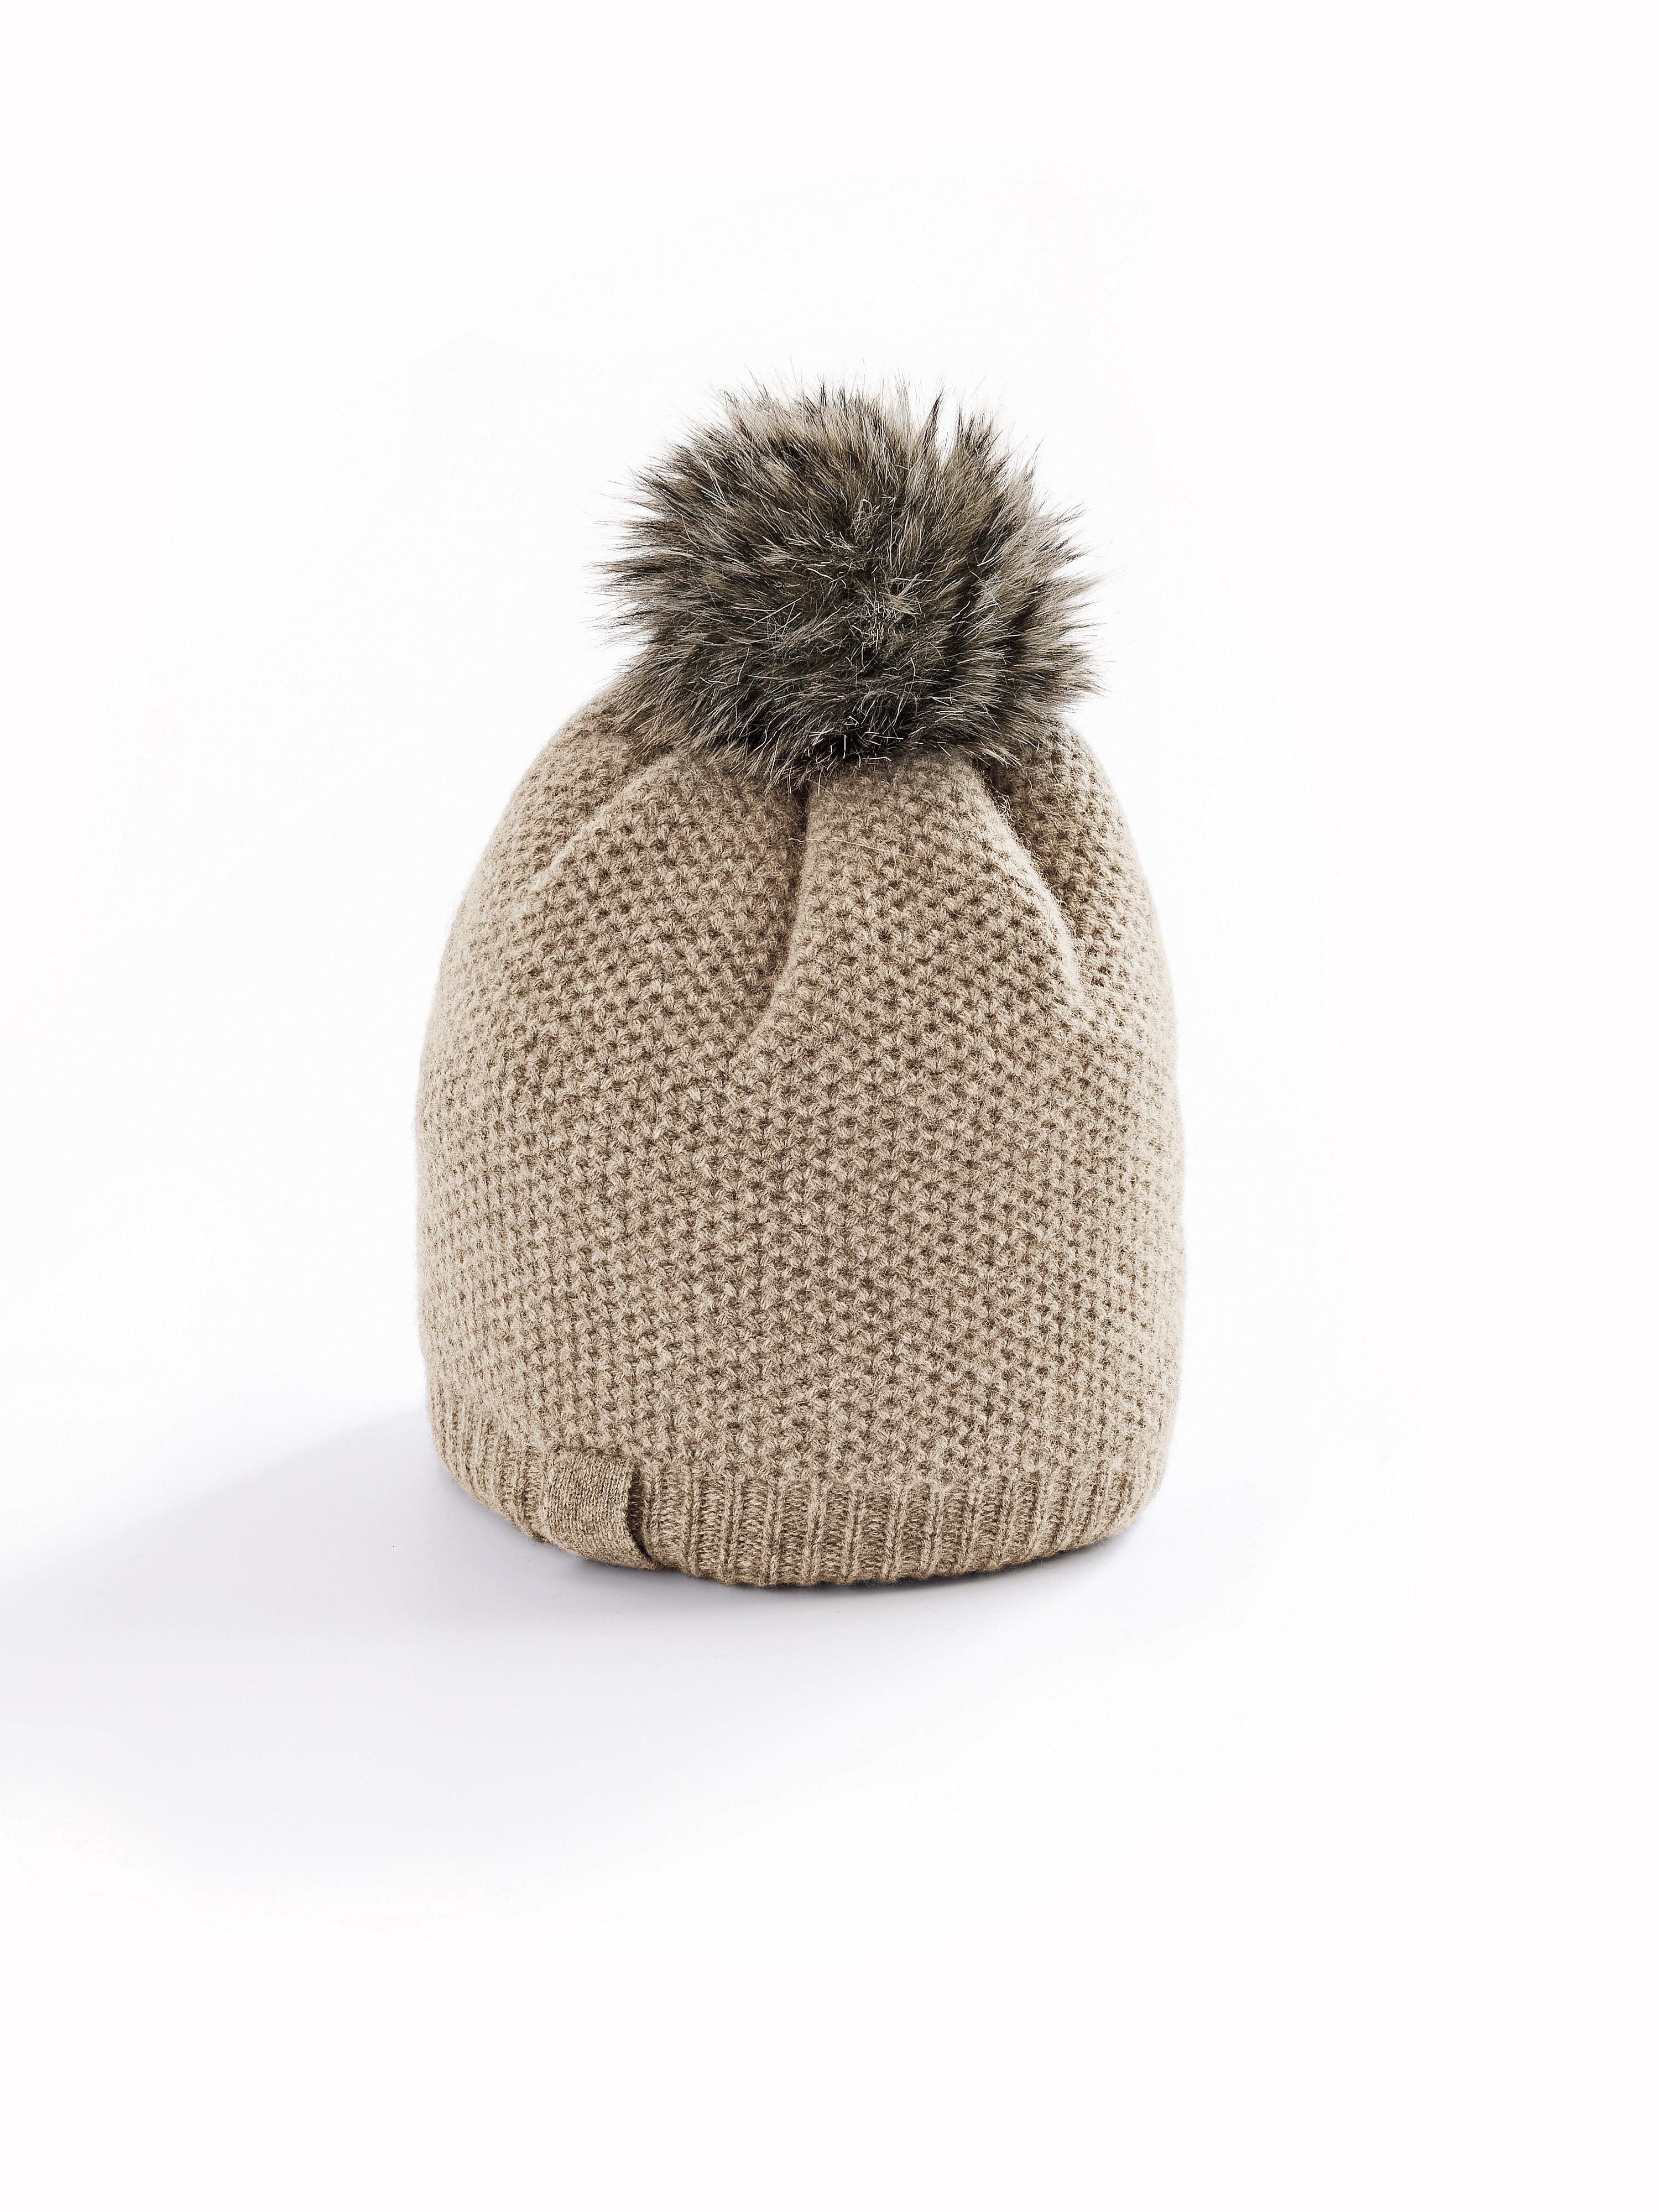 hat-in-100-cashmere-from-peter-hahn-cashmere-beige